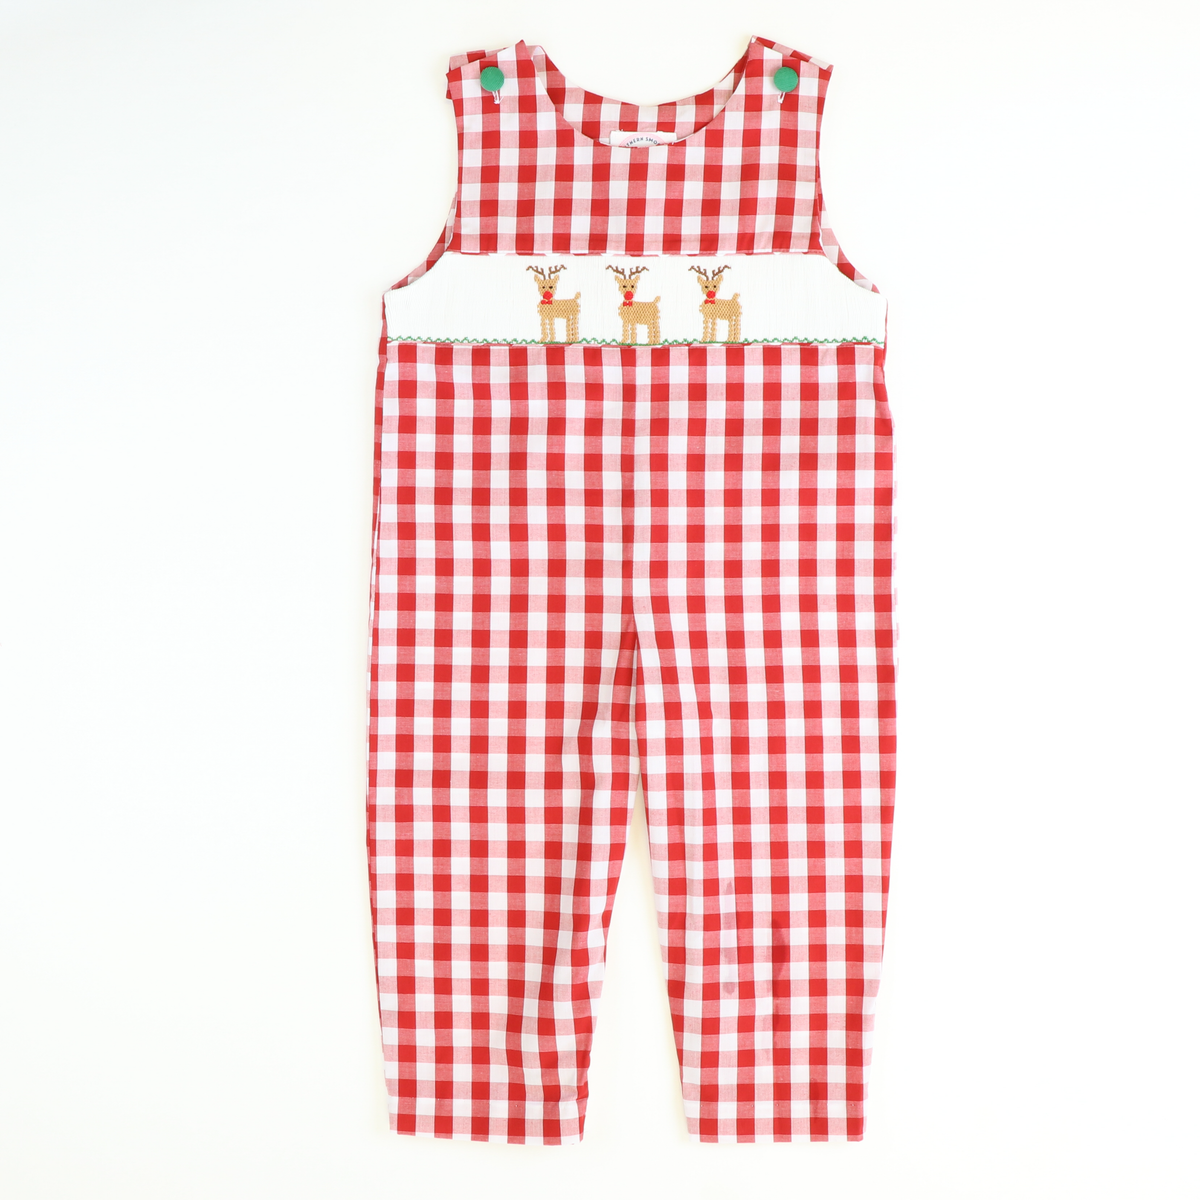 Smocked Reindeer Longall - Red Wide Check